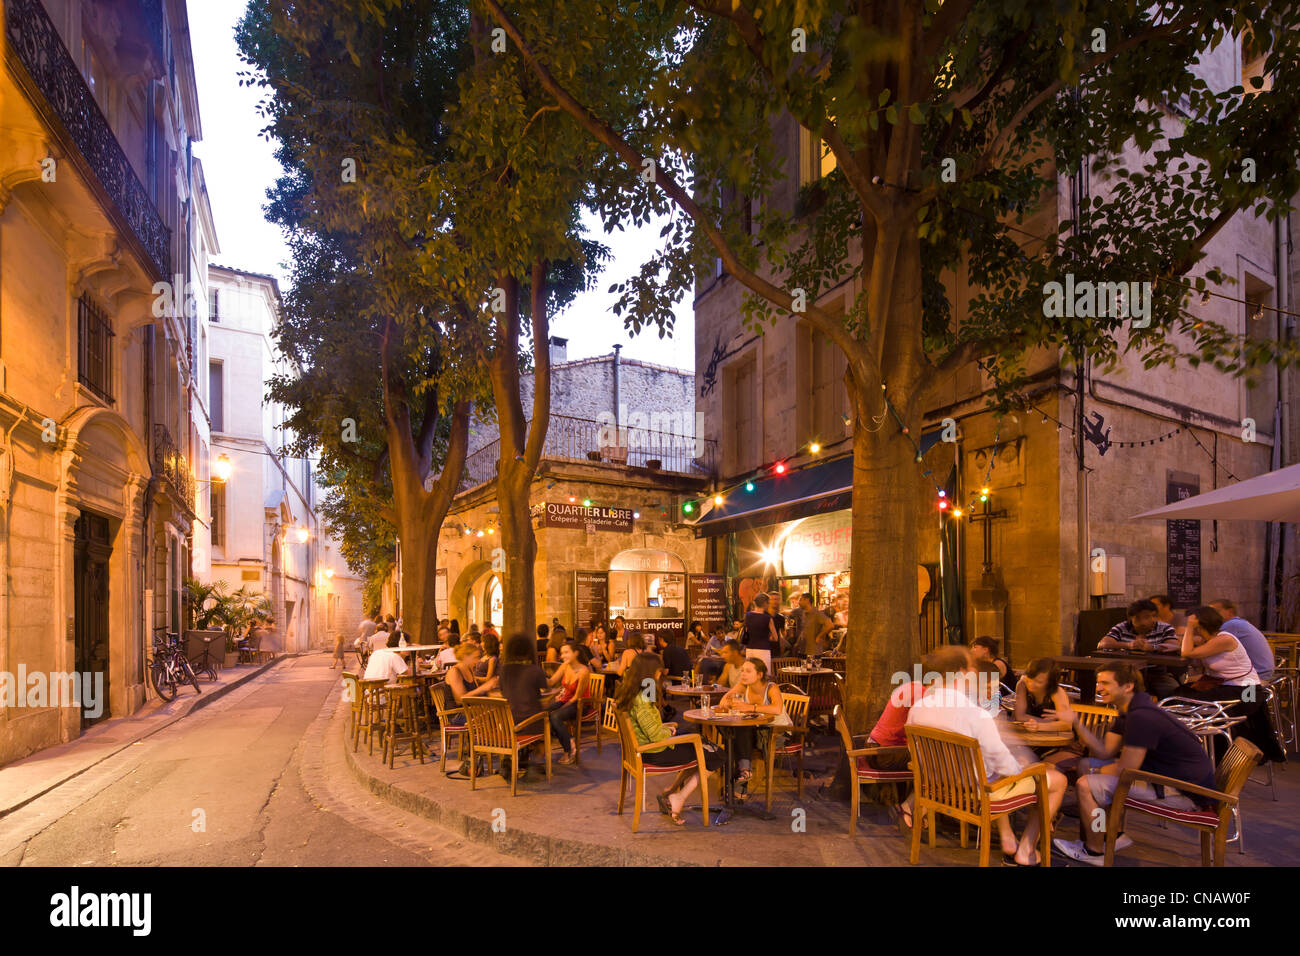 france herault montpellier historical center restaurant cafe stock photo royalty free image. Black Bedroom Furniture Sets. Home Design Ideas